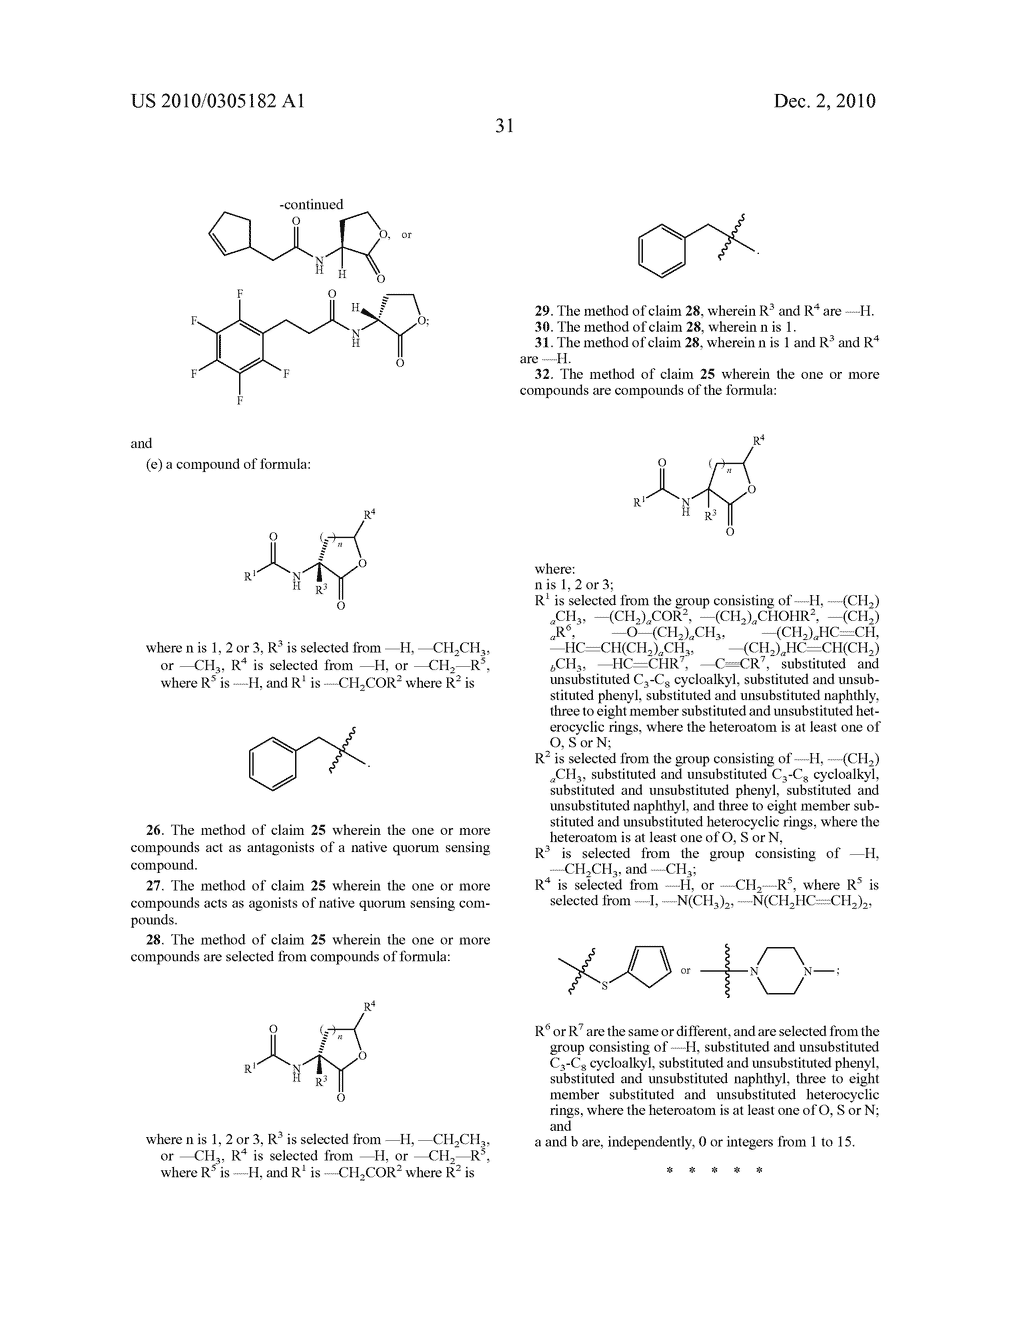 COMPOUNDS AND METHODS FOR MODULATING COMMUNICATION AND VIRULENCE IN QUORUM SENSING BACTERIA - diagram, schematic, and image 108